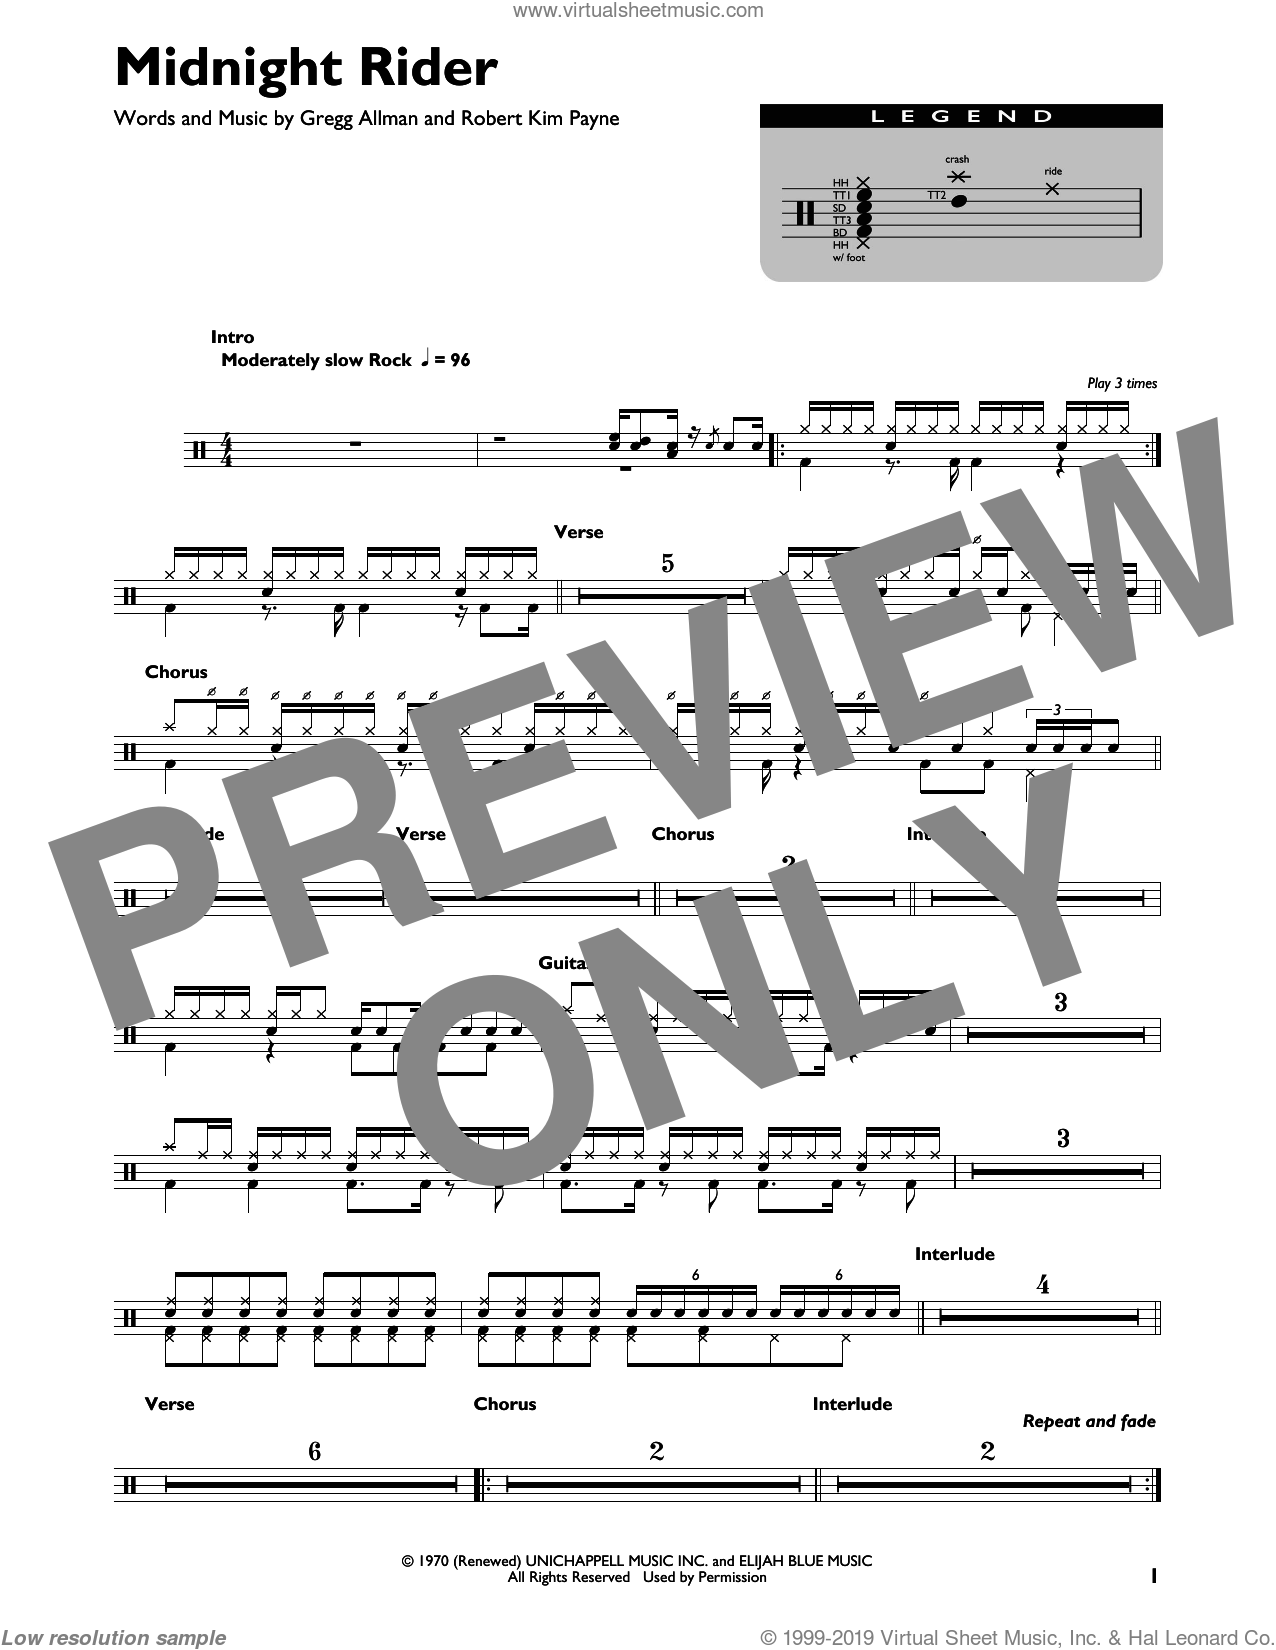 Midnight Rider sheet music for drums by The Allman Brothers Band, Gregg Allman and Robert Kim Payne, intermediate skill level